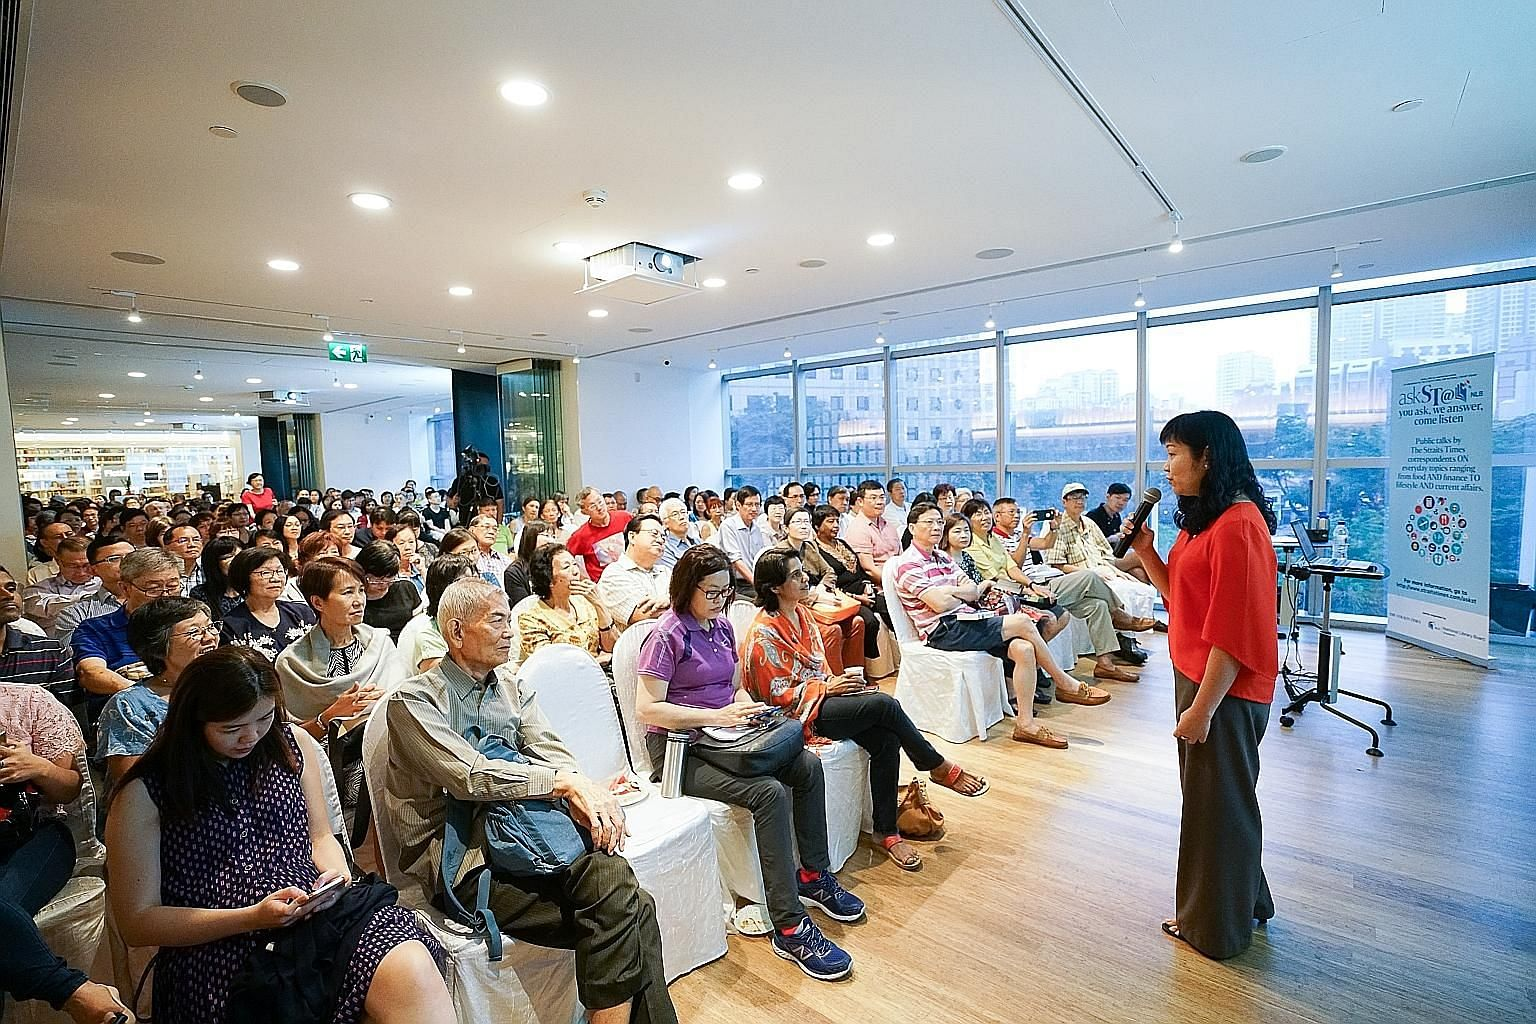 Ms Tan spoke on topics such as CPF interest rates, the Retirement Sum Topping-Up Scheme, CPF withdrawals and CPF Life. Her talk was the 11th in the year-long series sponsored by National Library Board, where readers can learn more about topics rangin